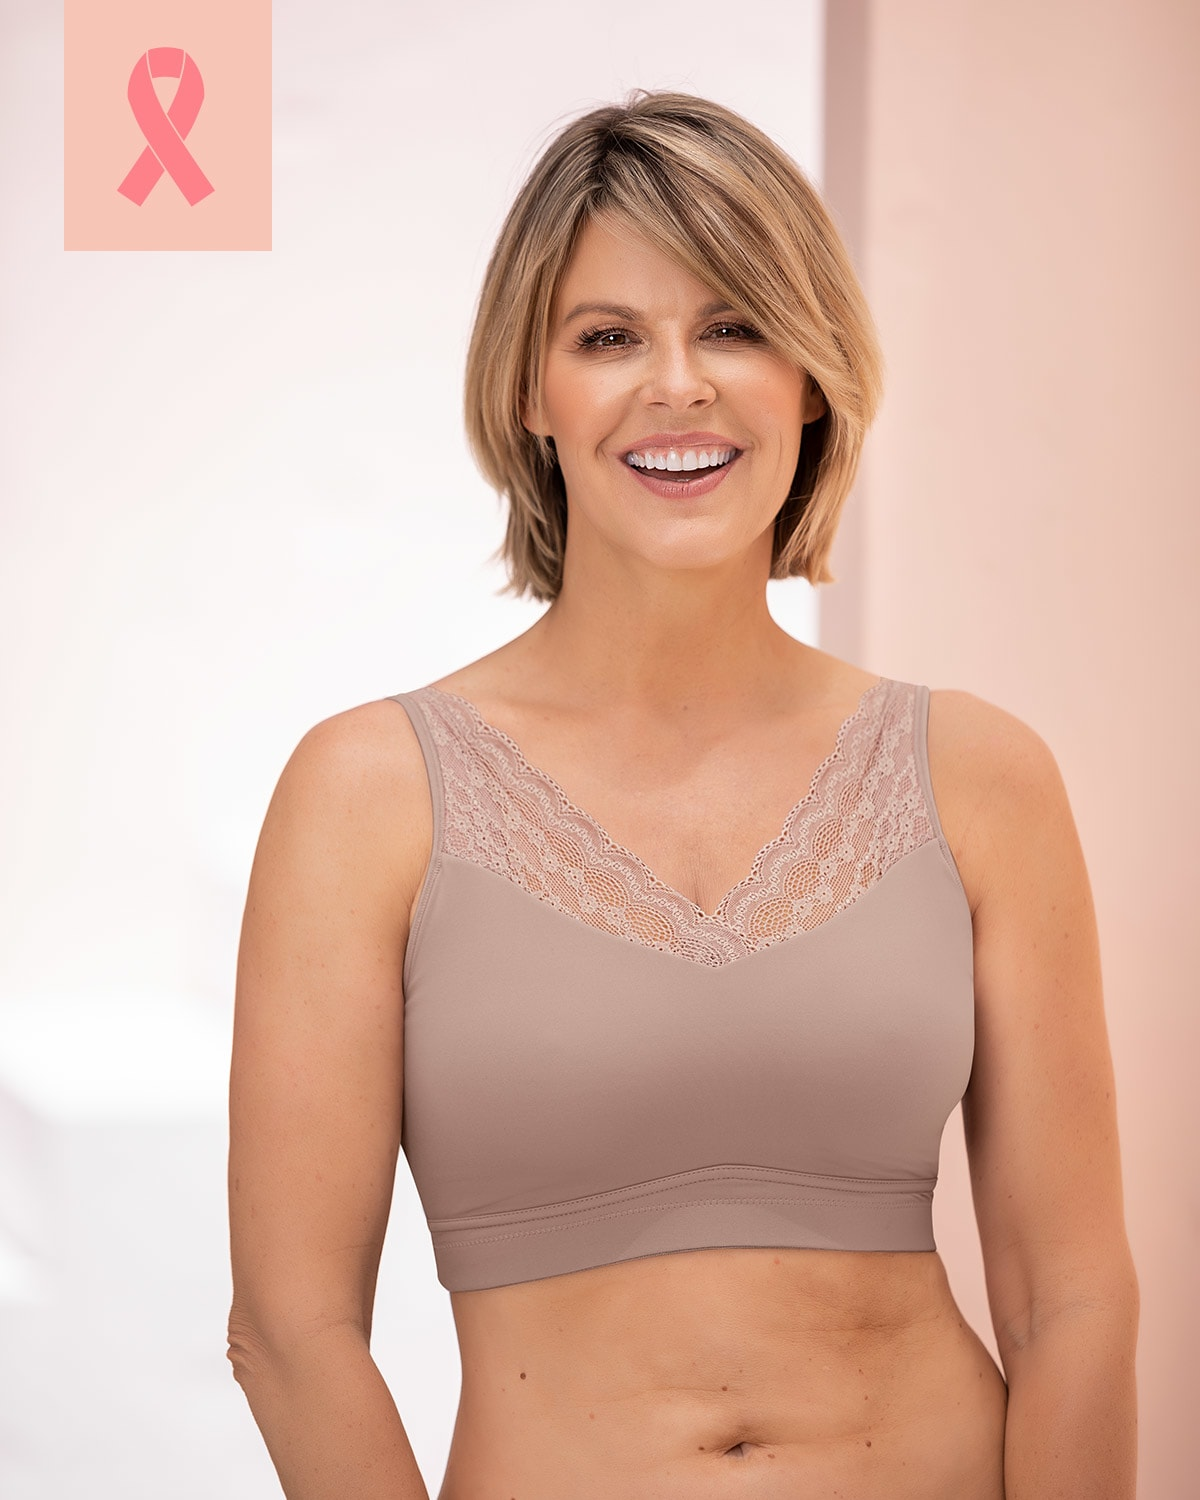 Pocketed Mastectomy Bra - Doctor Recommended